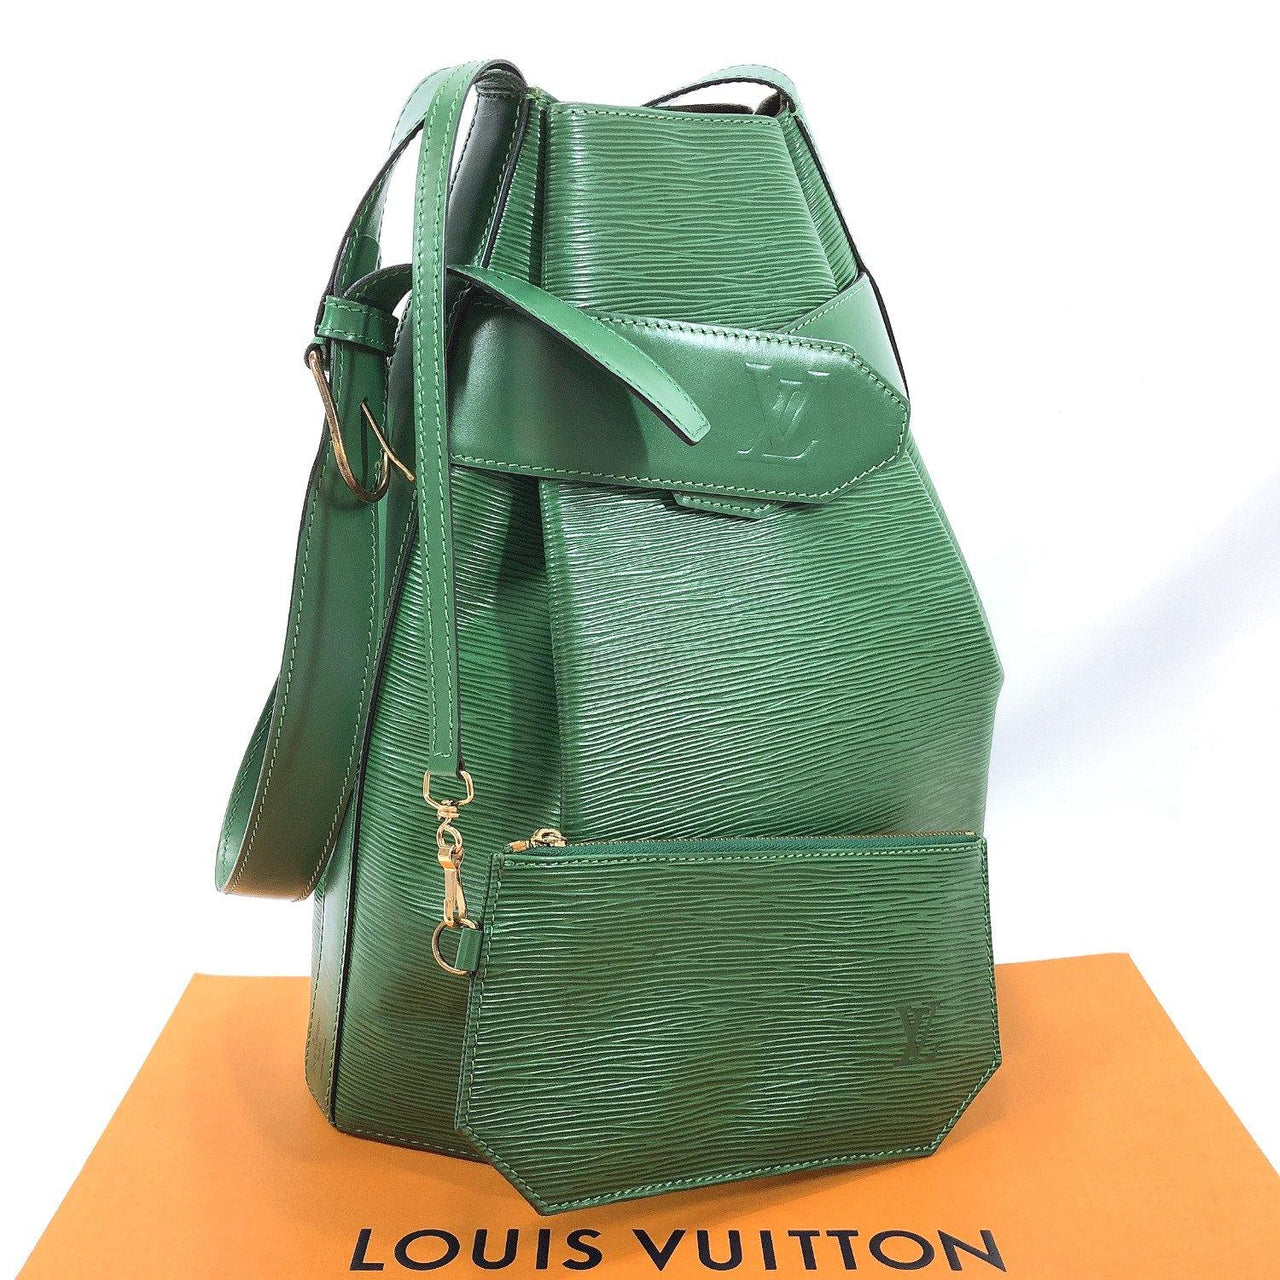 LOUIS VUITTON Shoulder Bag M80207 Sac de Paul PM Epi Leather green Women Used - JP-BRANDS.com